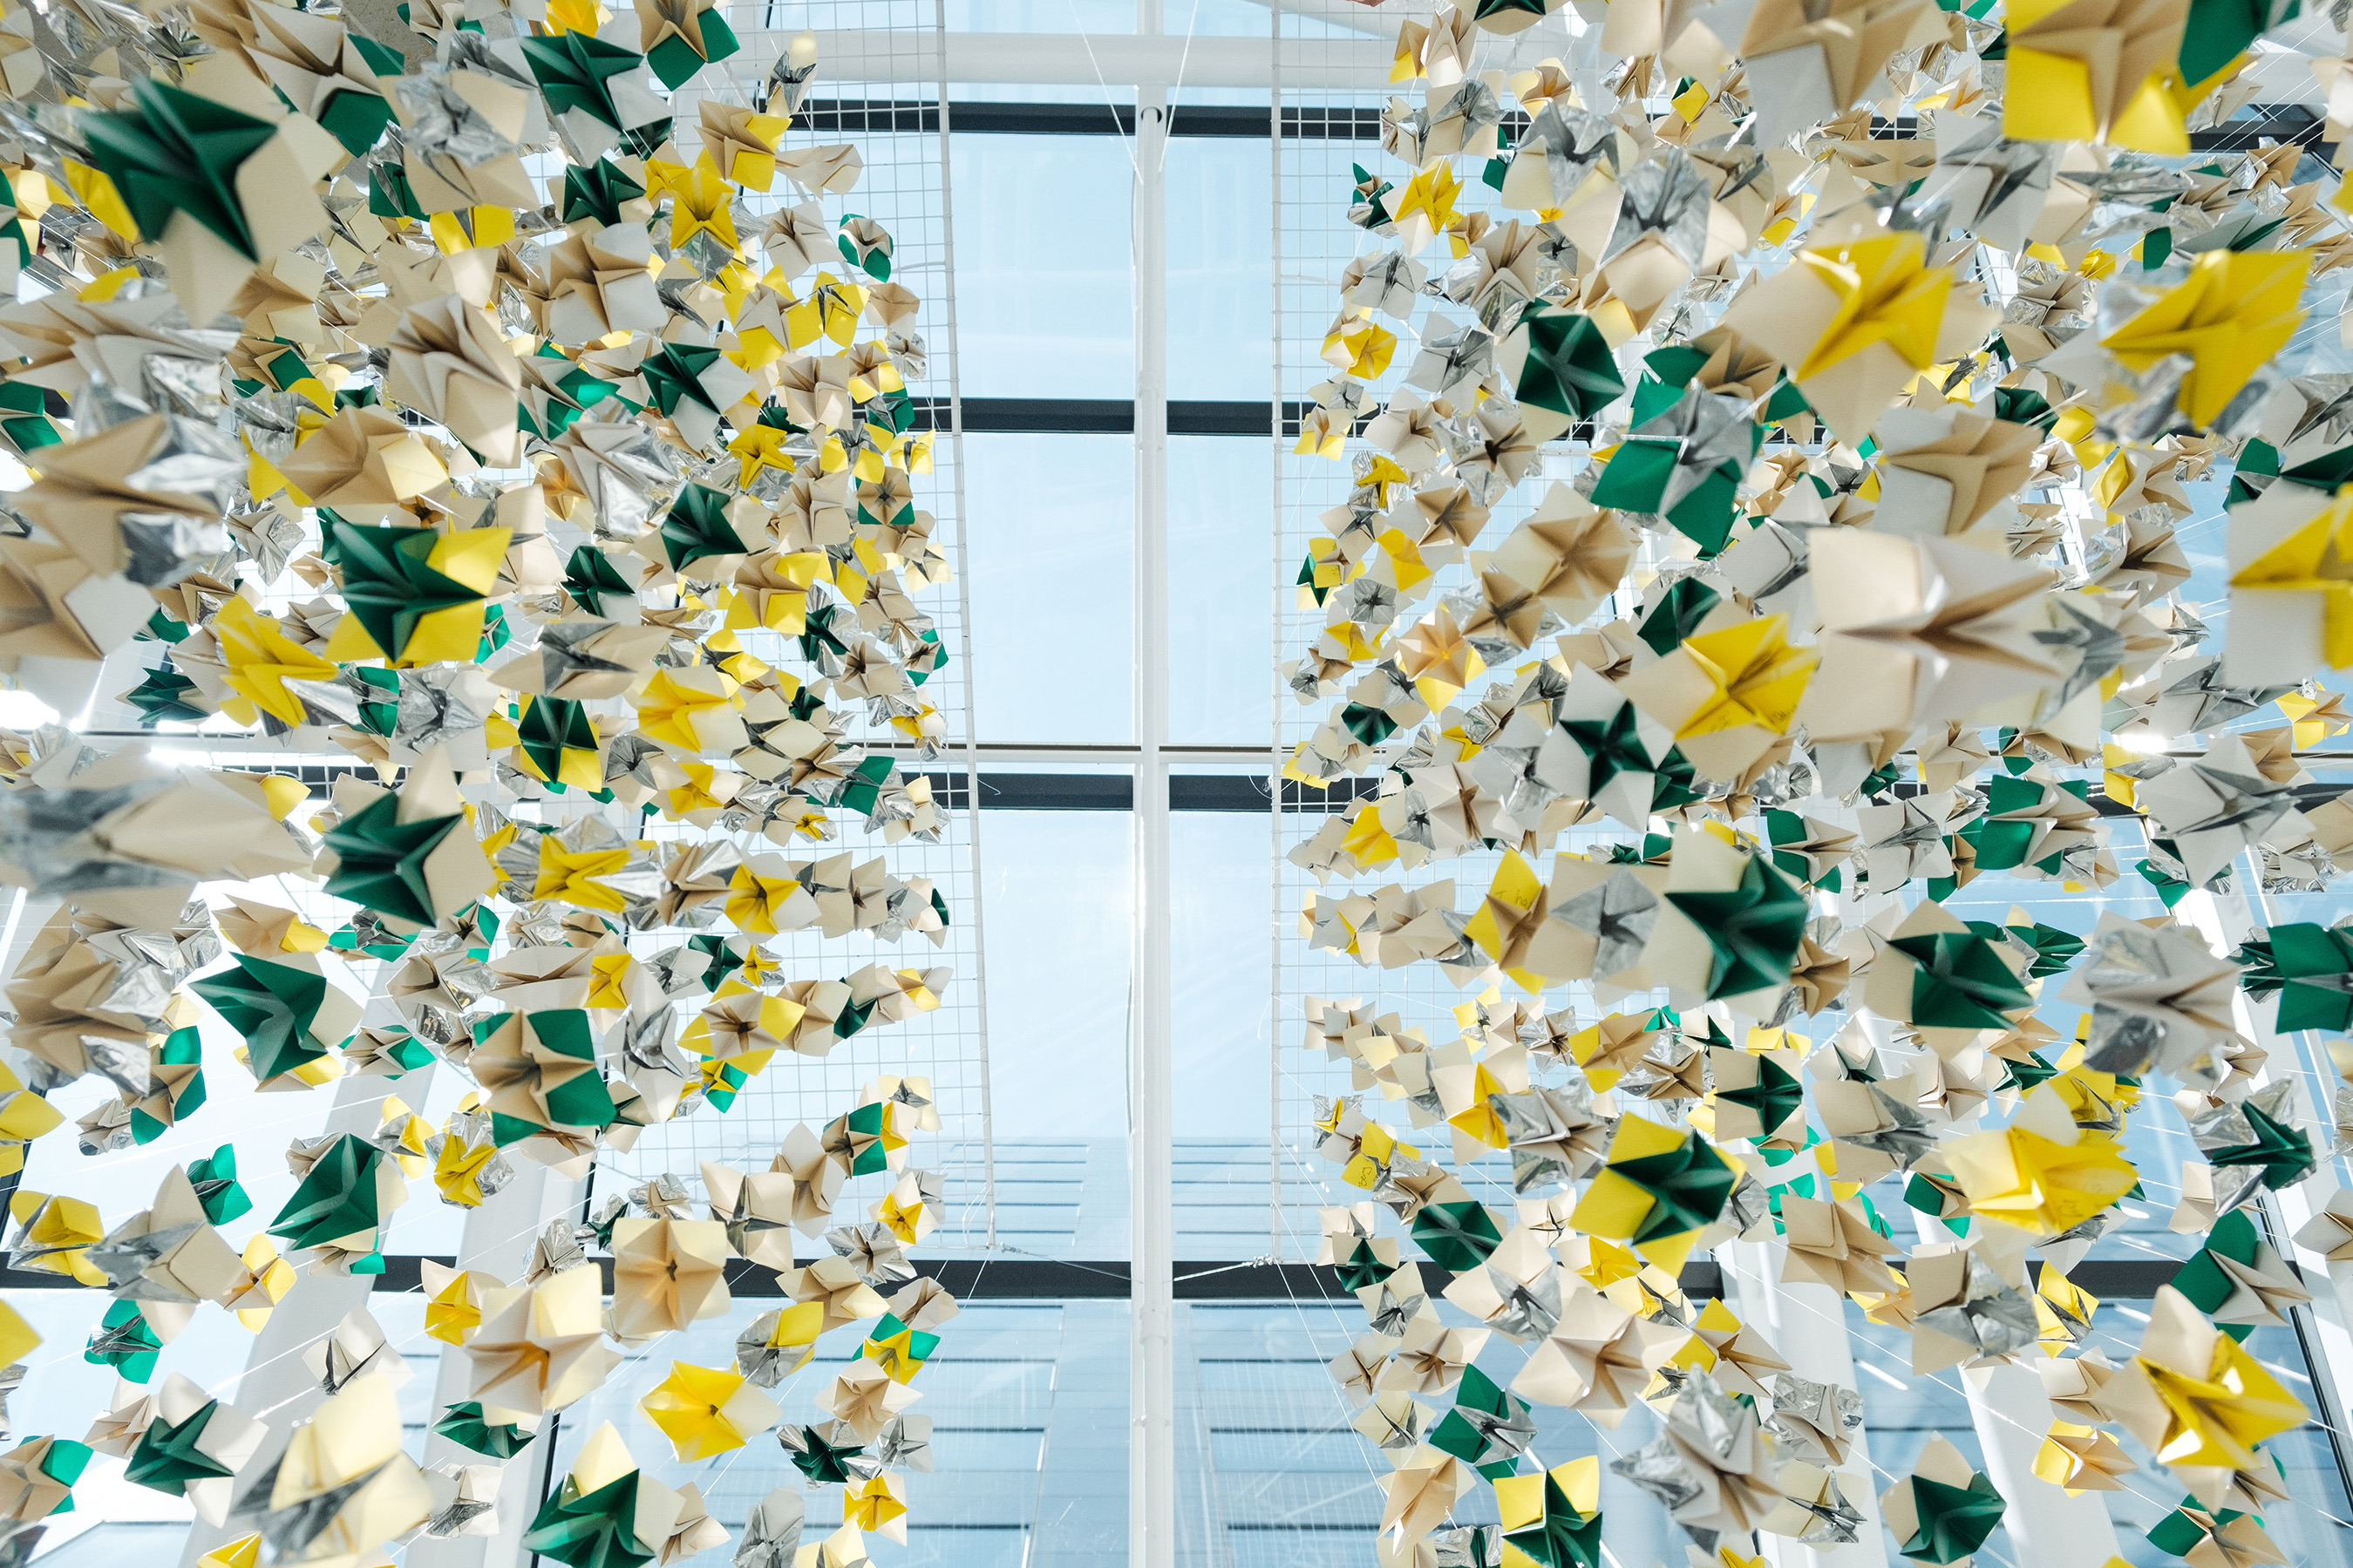 Primrose Schools transformed 6,000 handwritten guilts from parents into a hanging art installation in their Atlanta headquarters building.